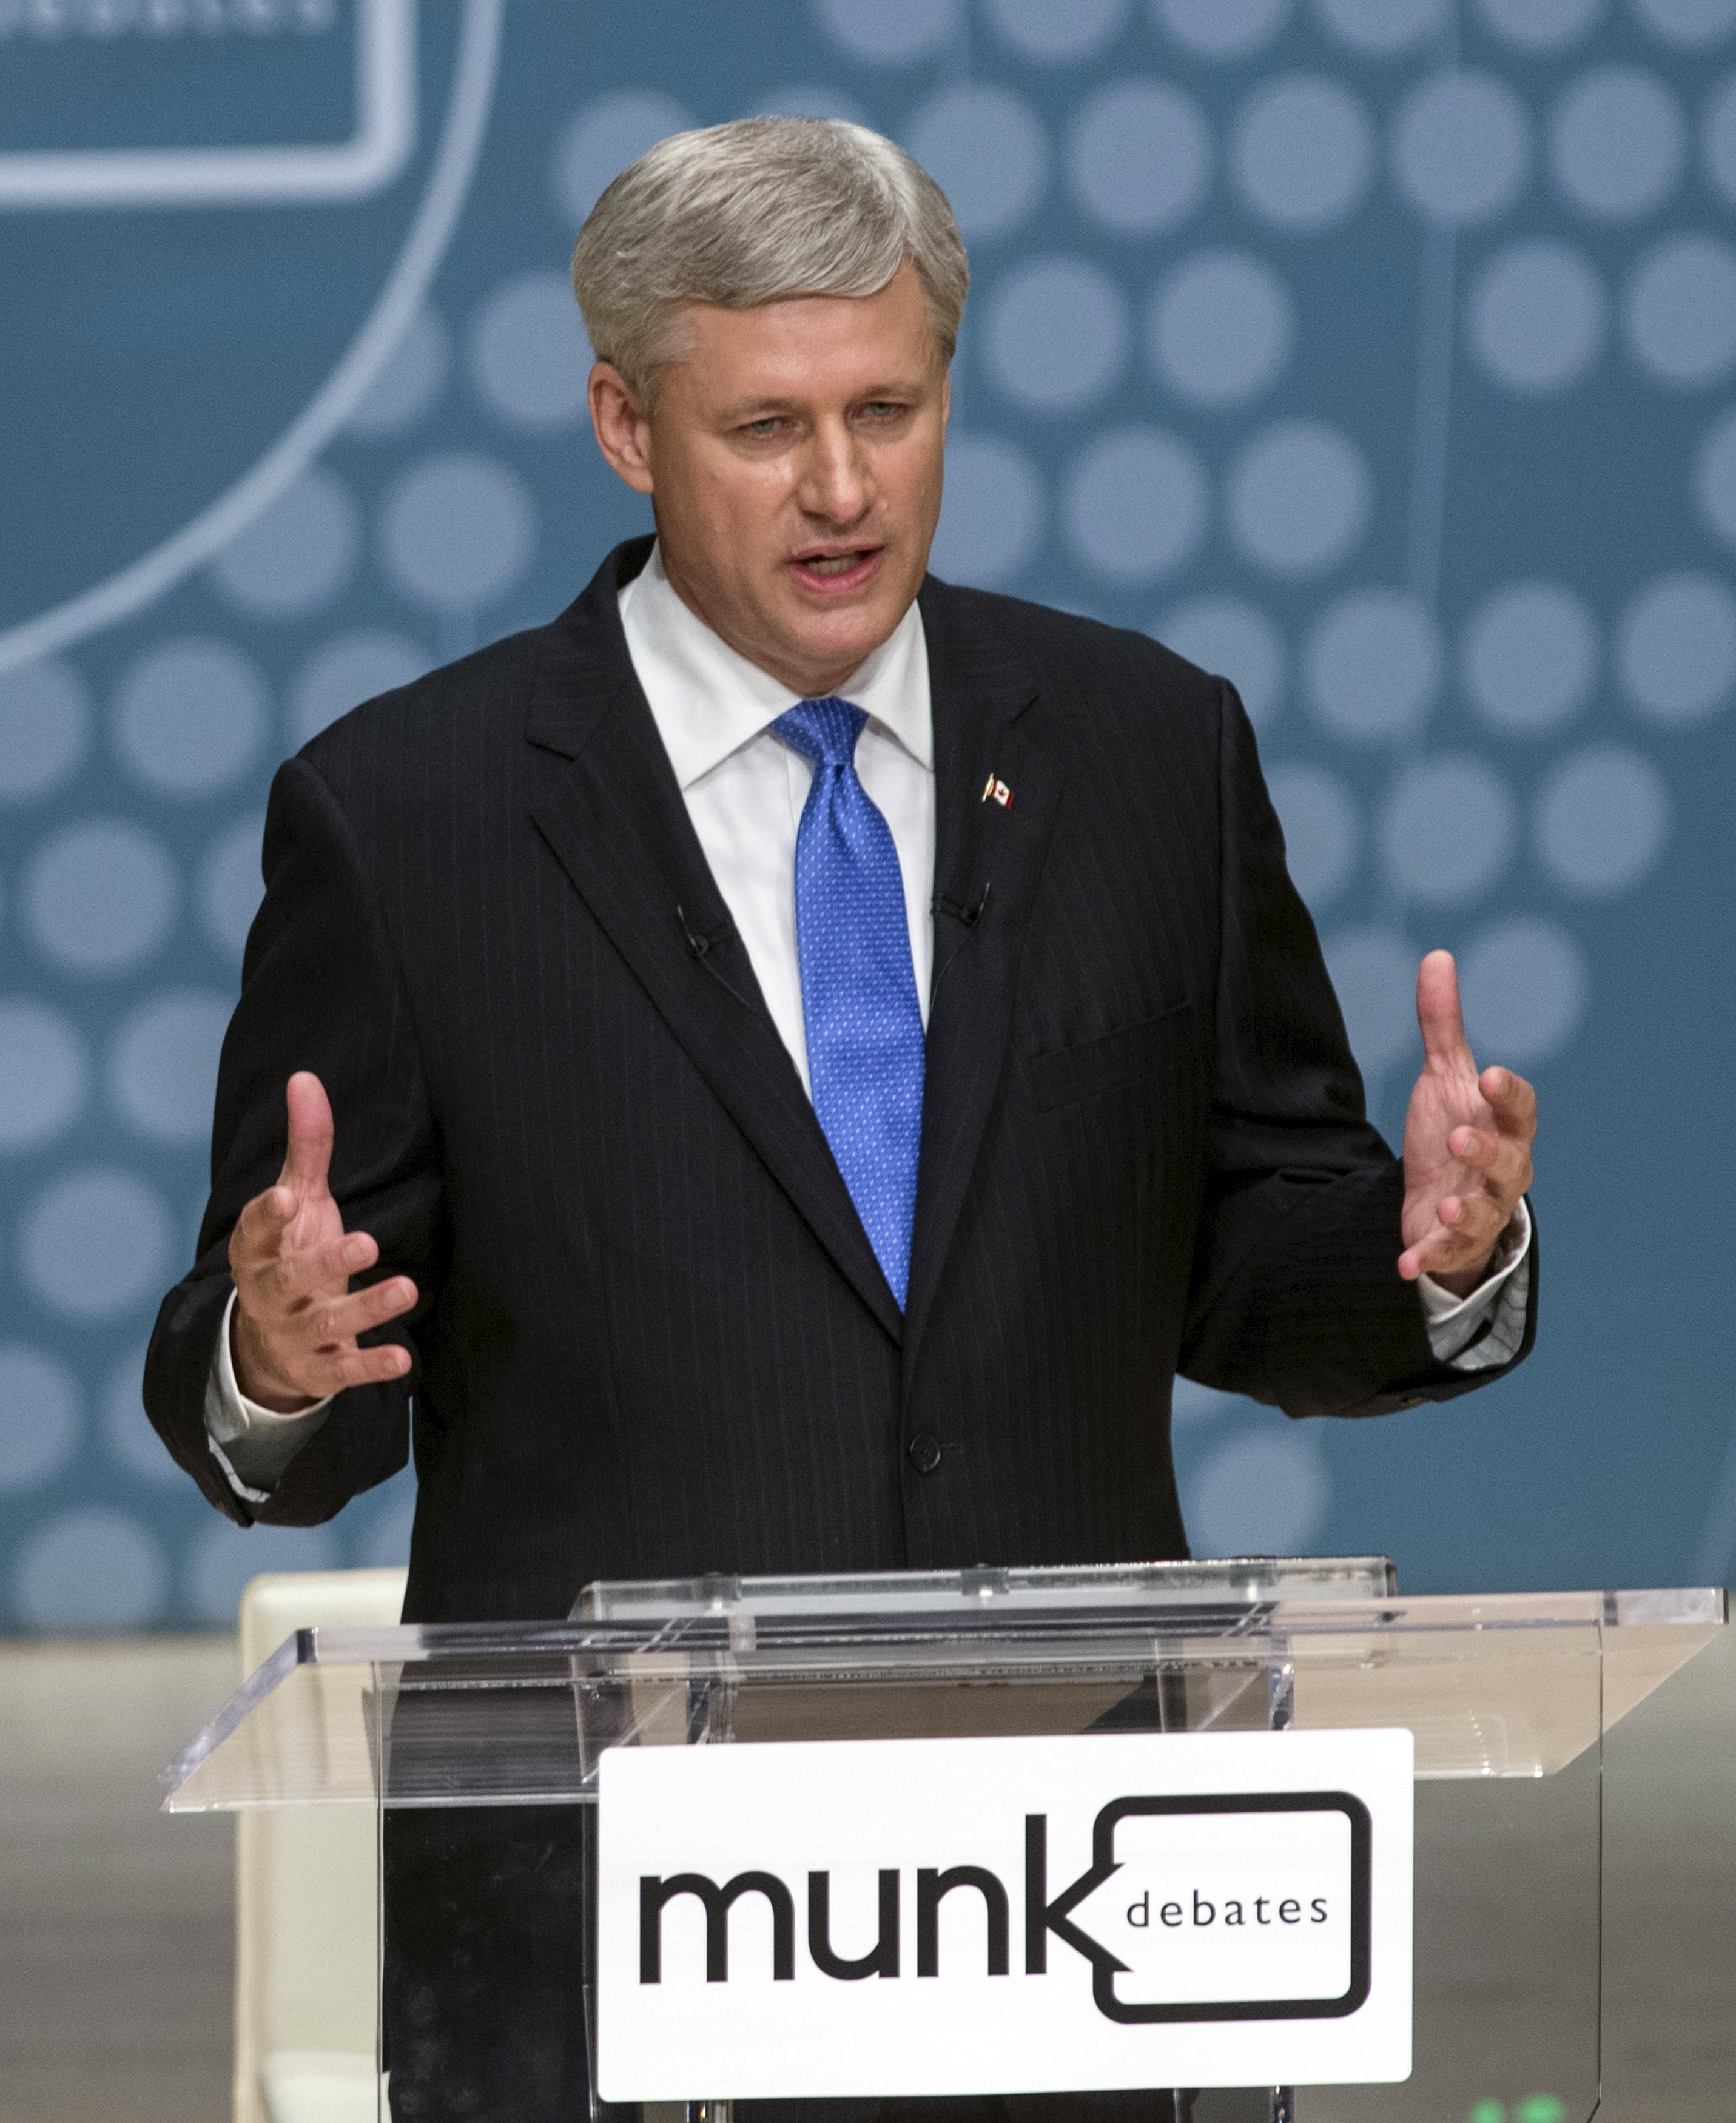 Conservative leader and Prime Minister Stephen Harper speaks during the Munk leaders' debate on Canada's foreign policy in Toronto, Canada September 28, 2015. Canadians go to the polls in a federal election on October 19, 2015. REUTERS/Nathan Denette/Pool